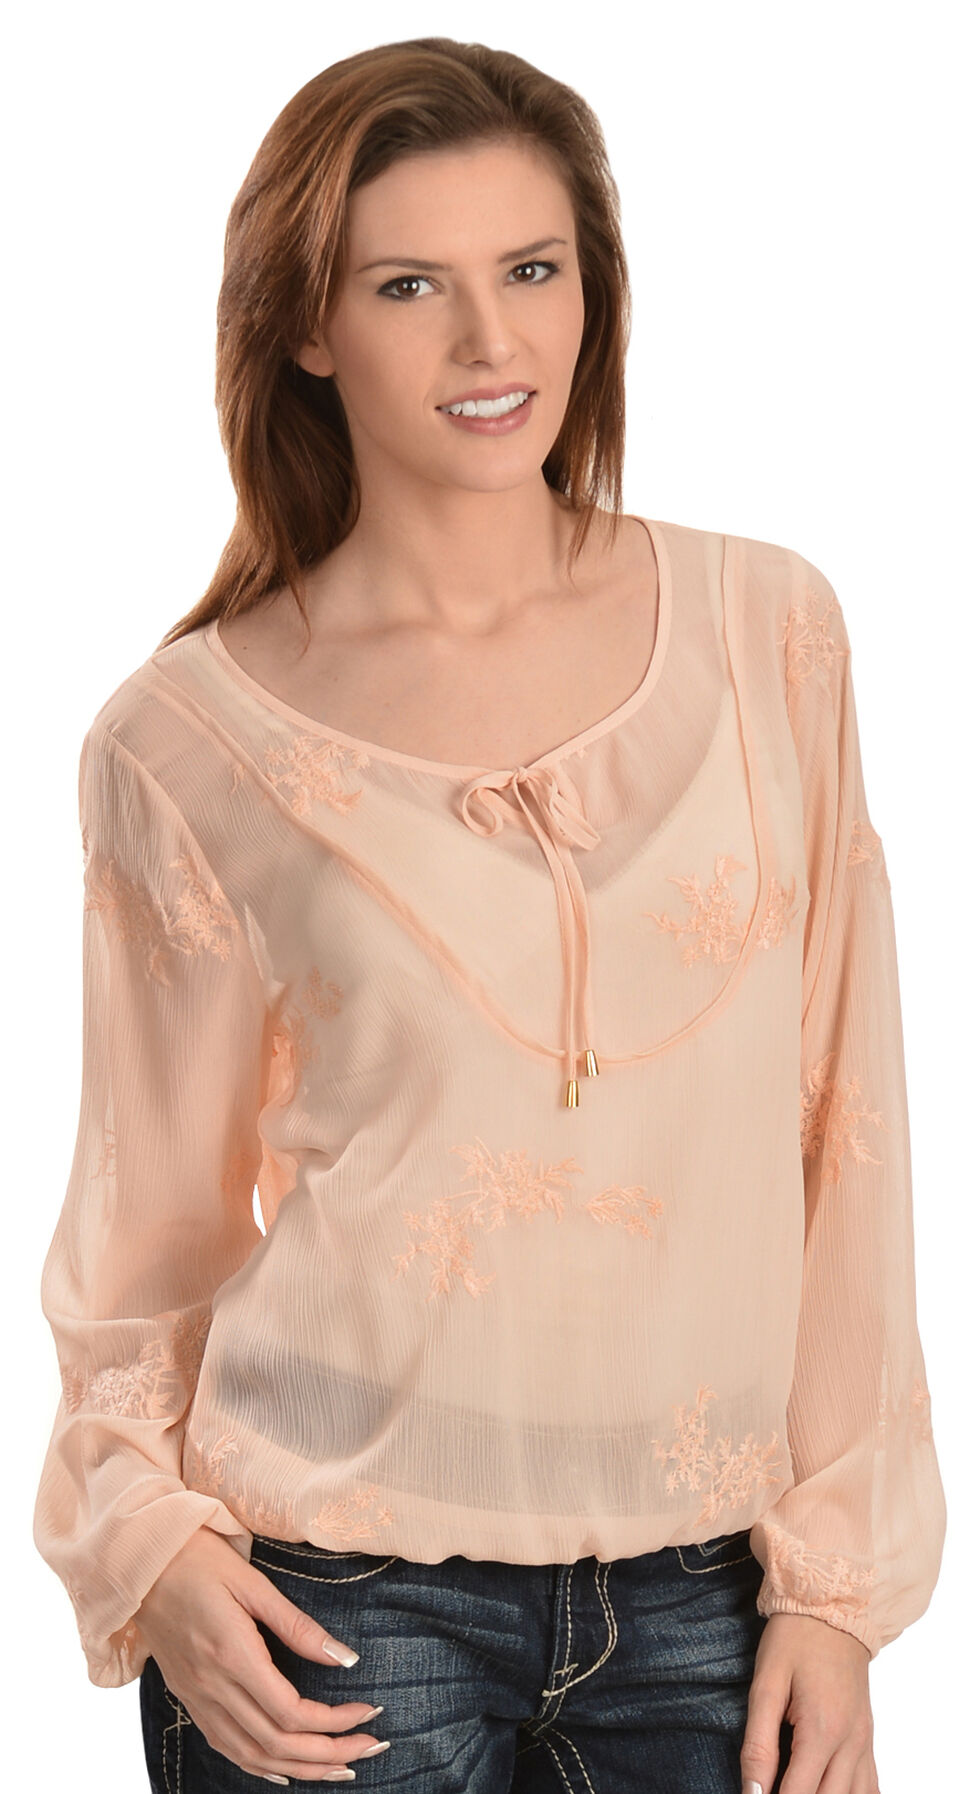 Ariat Alva Embroidered Chiffon Top, Natural, hi-res